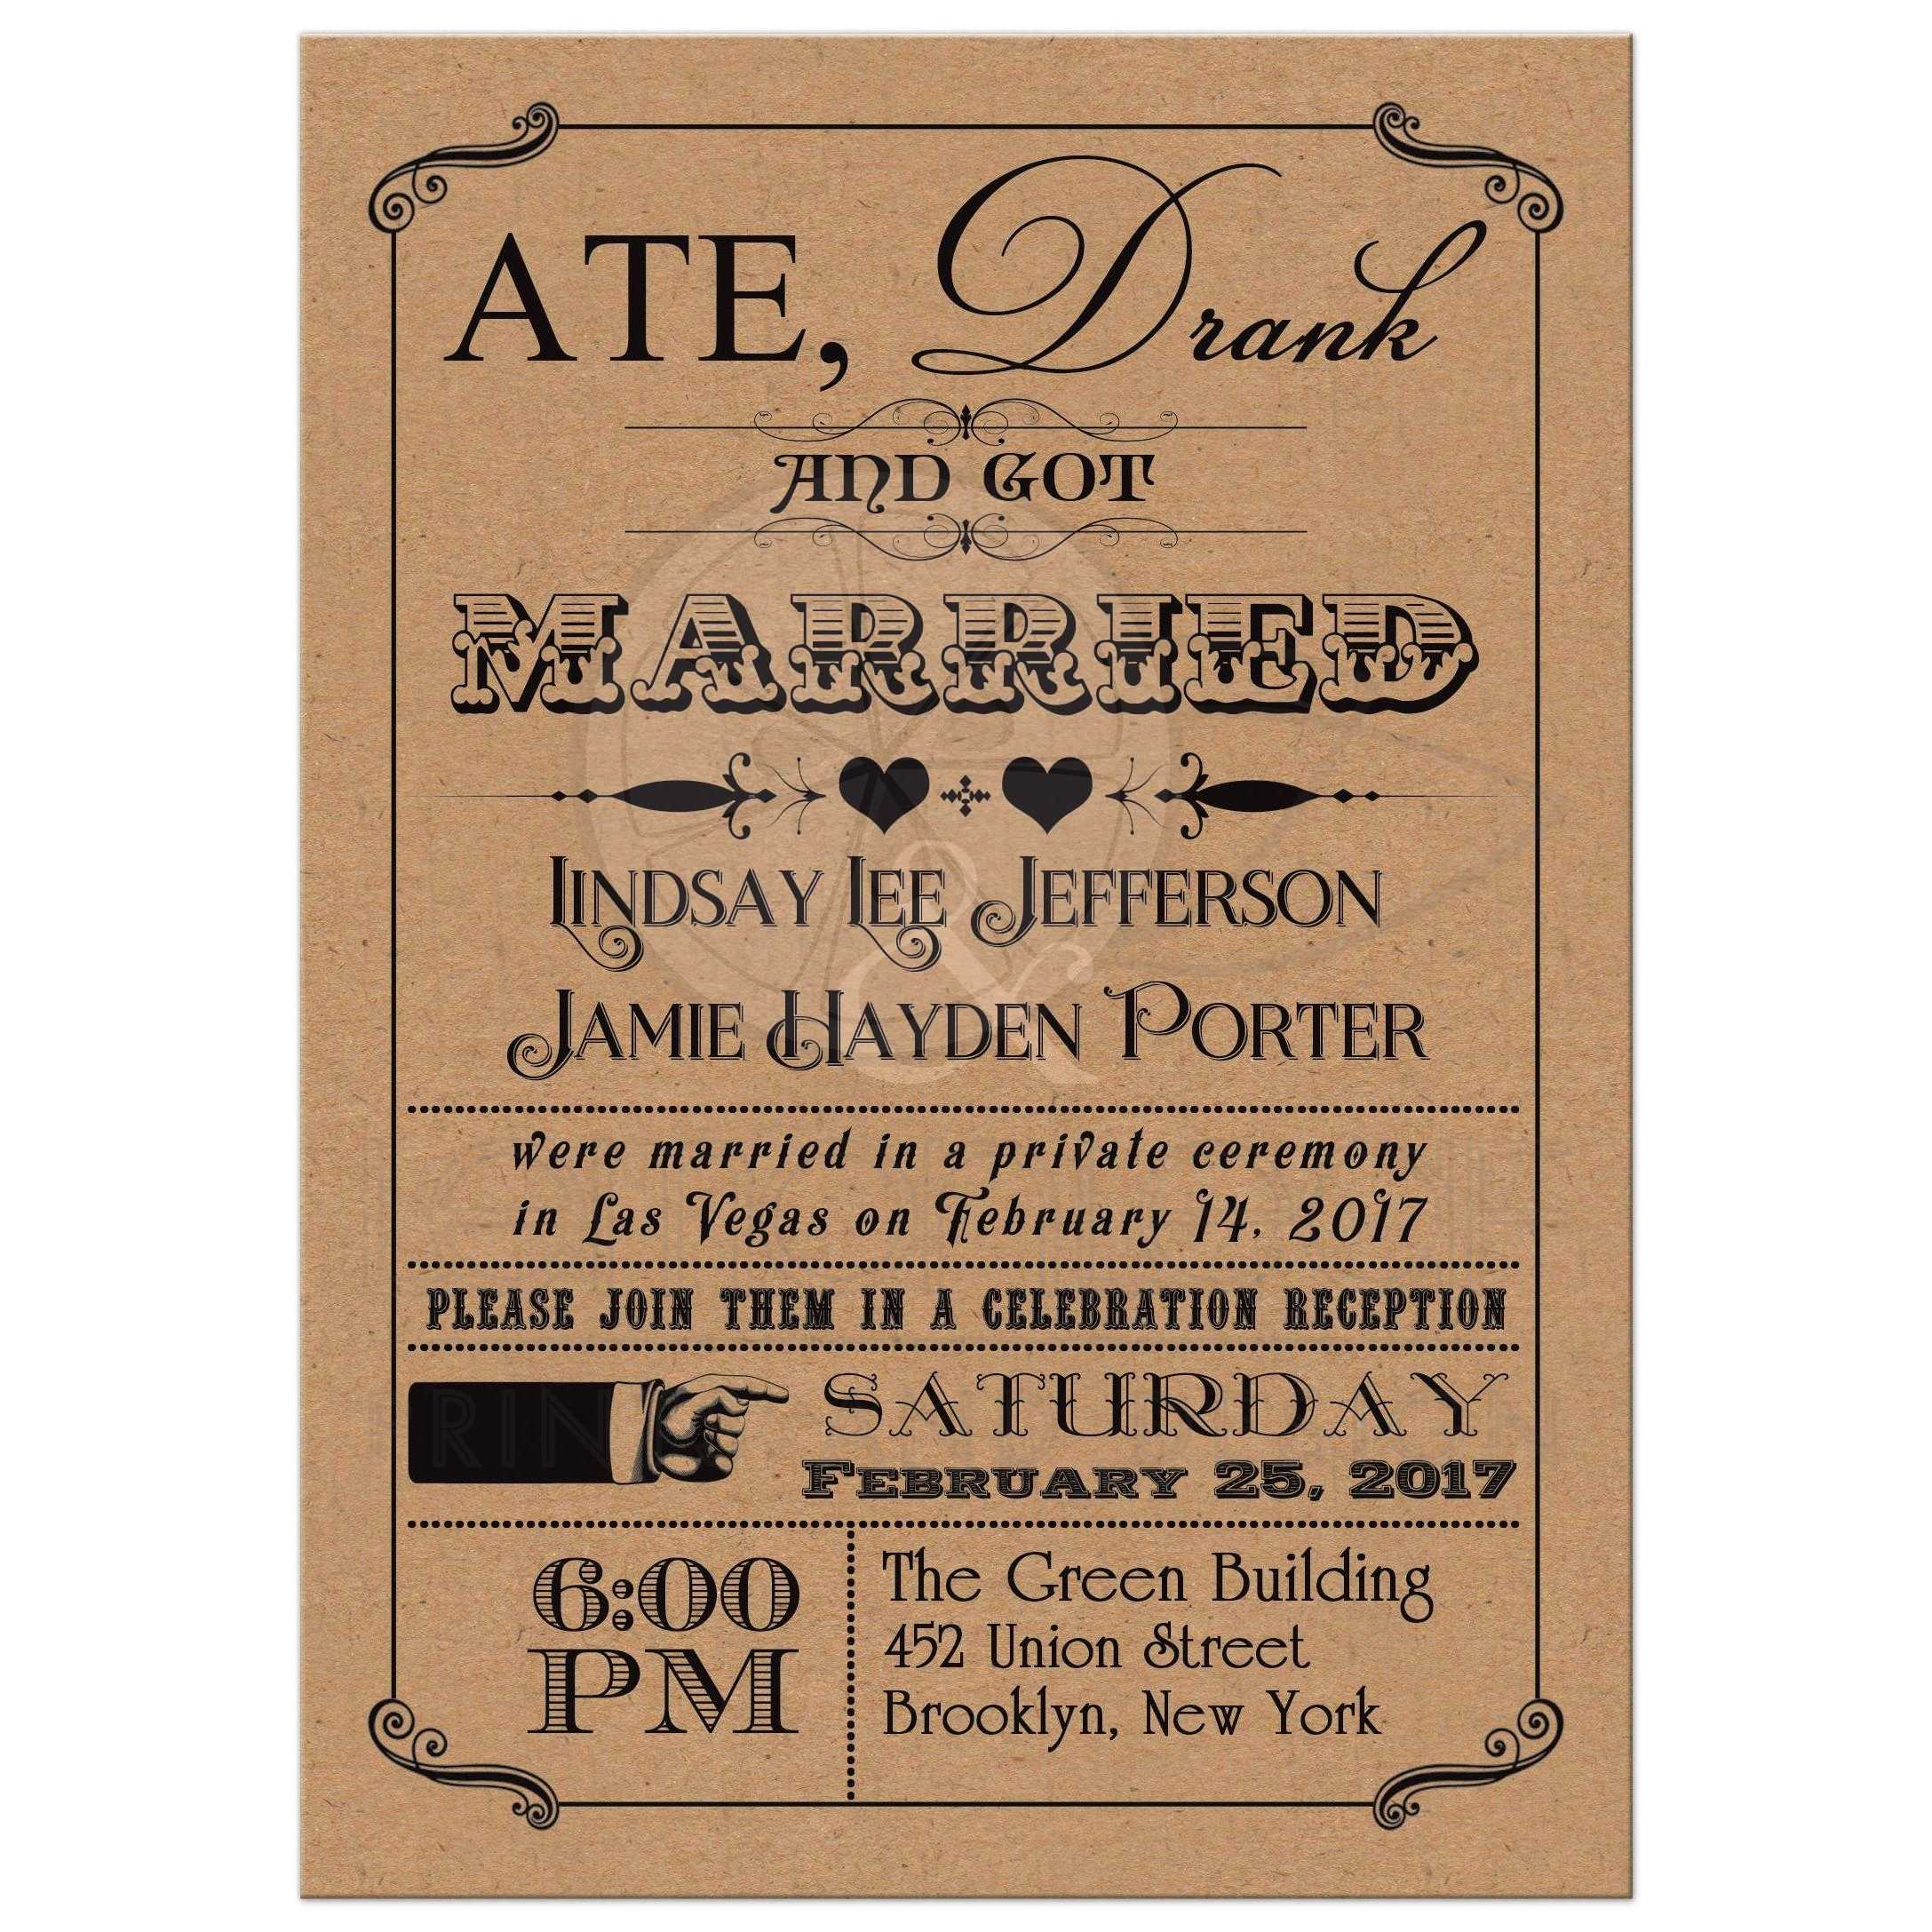 Ate Drank And Got Married Post Wedding Reception Invitation With Hearts Scrolls